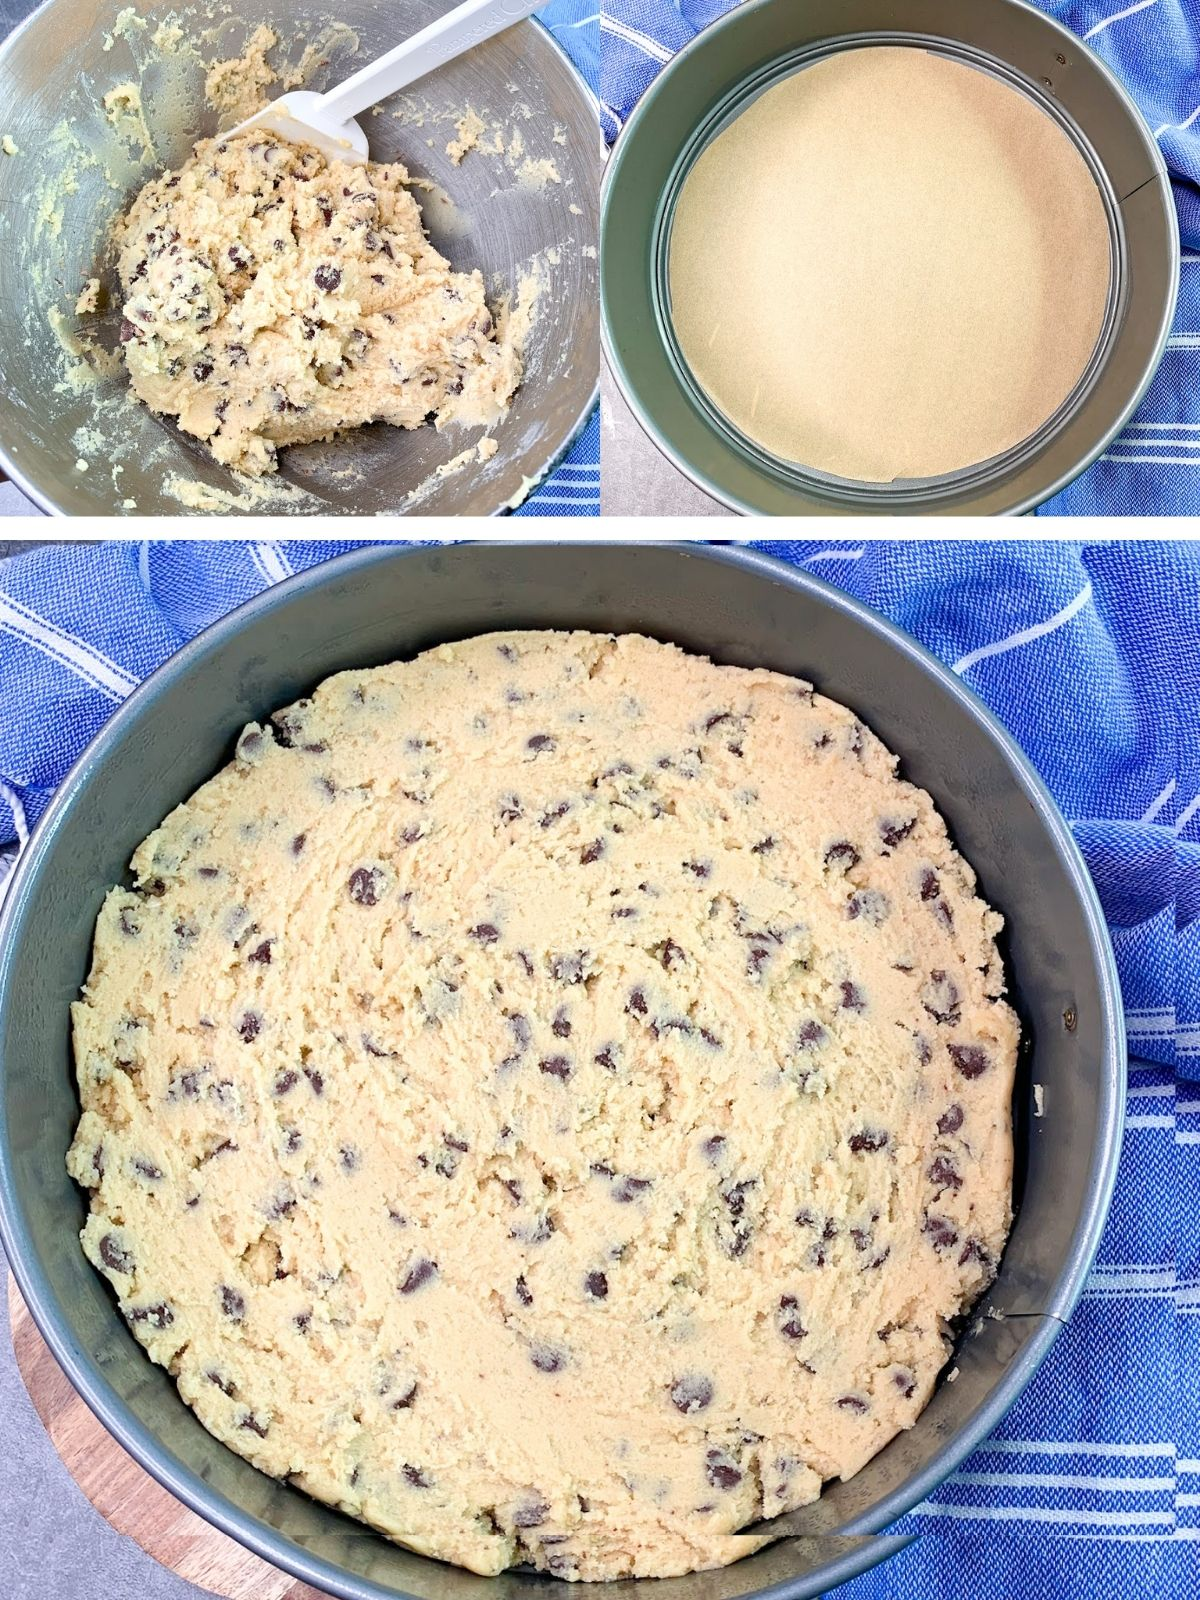 Chocolate Chip Cookie Dough in baking pan.